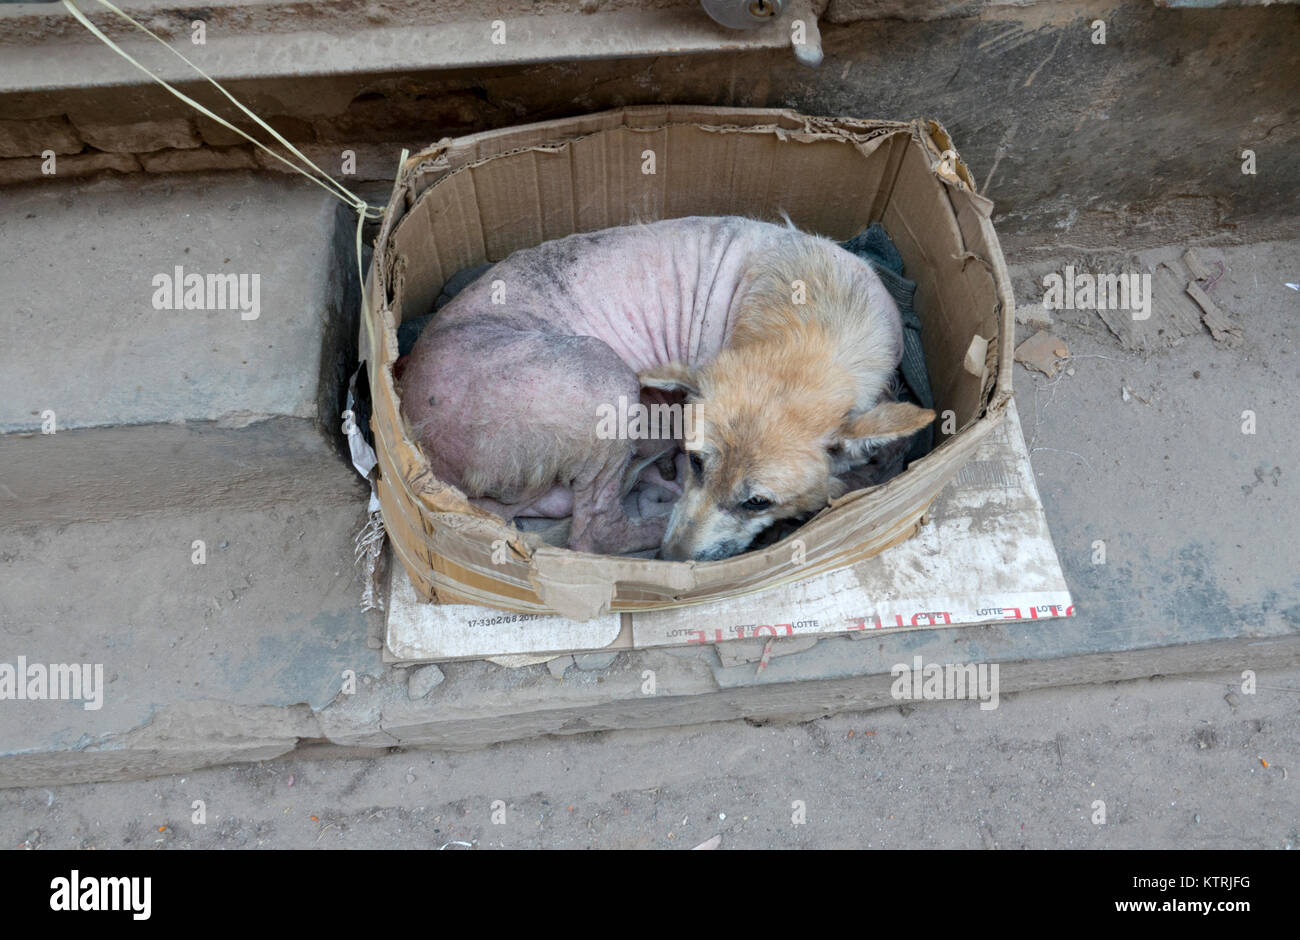 Hairless street dog sleeping in old cardboard box in Kathmandu, Nepal - Stock Image